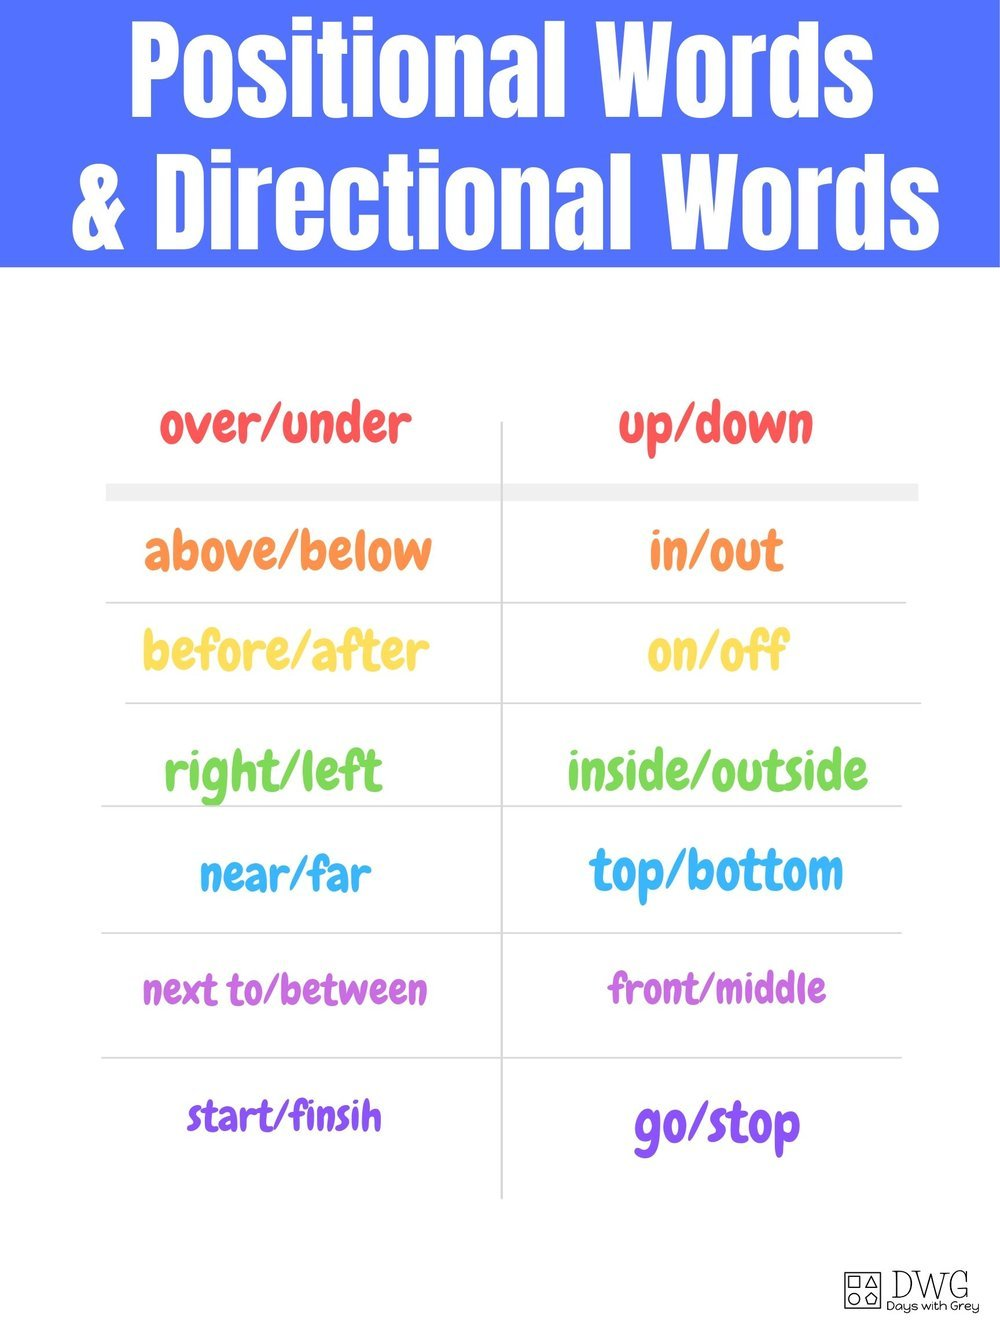 positional words for two-year-olds